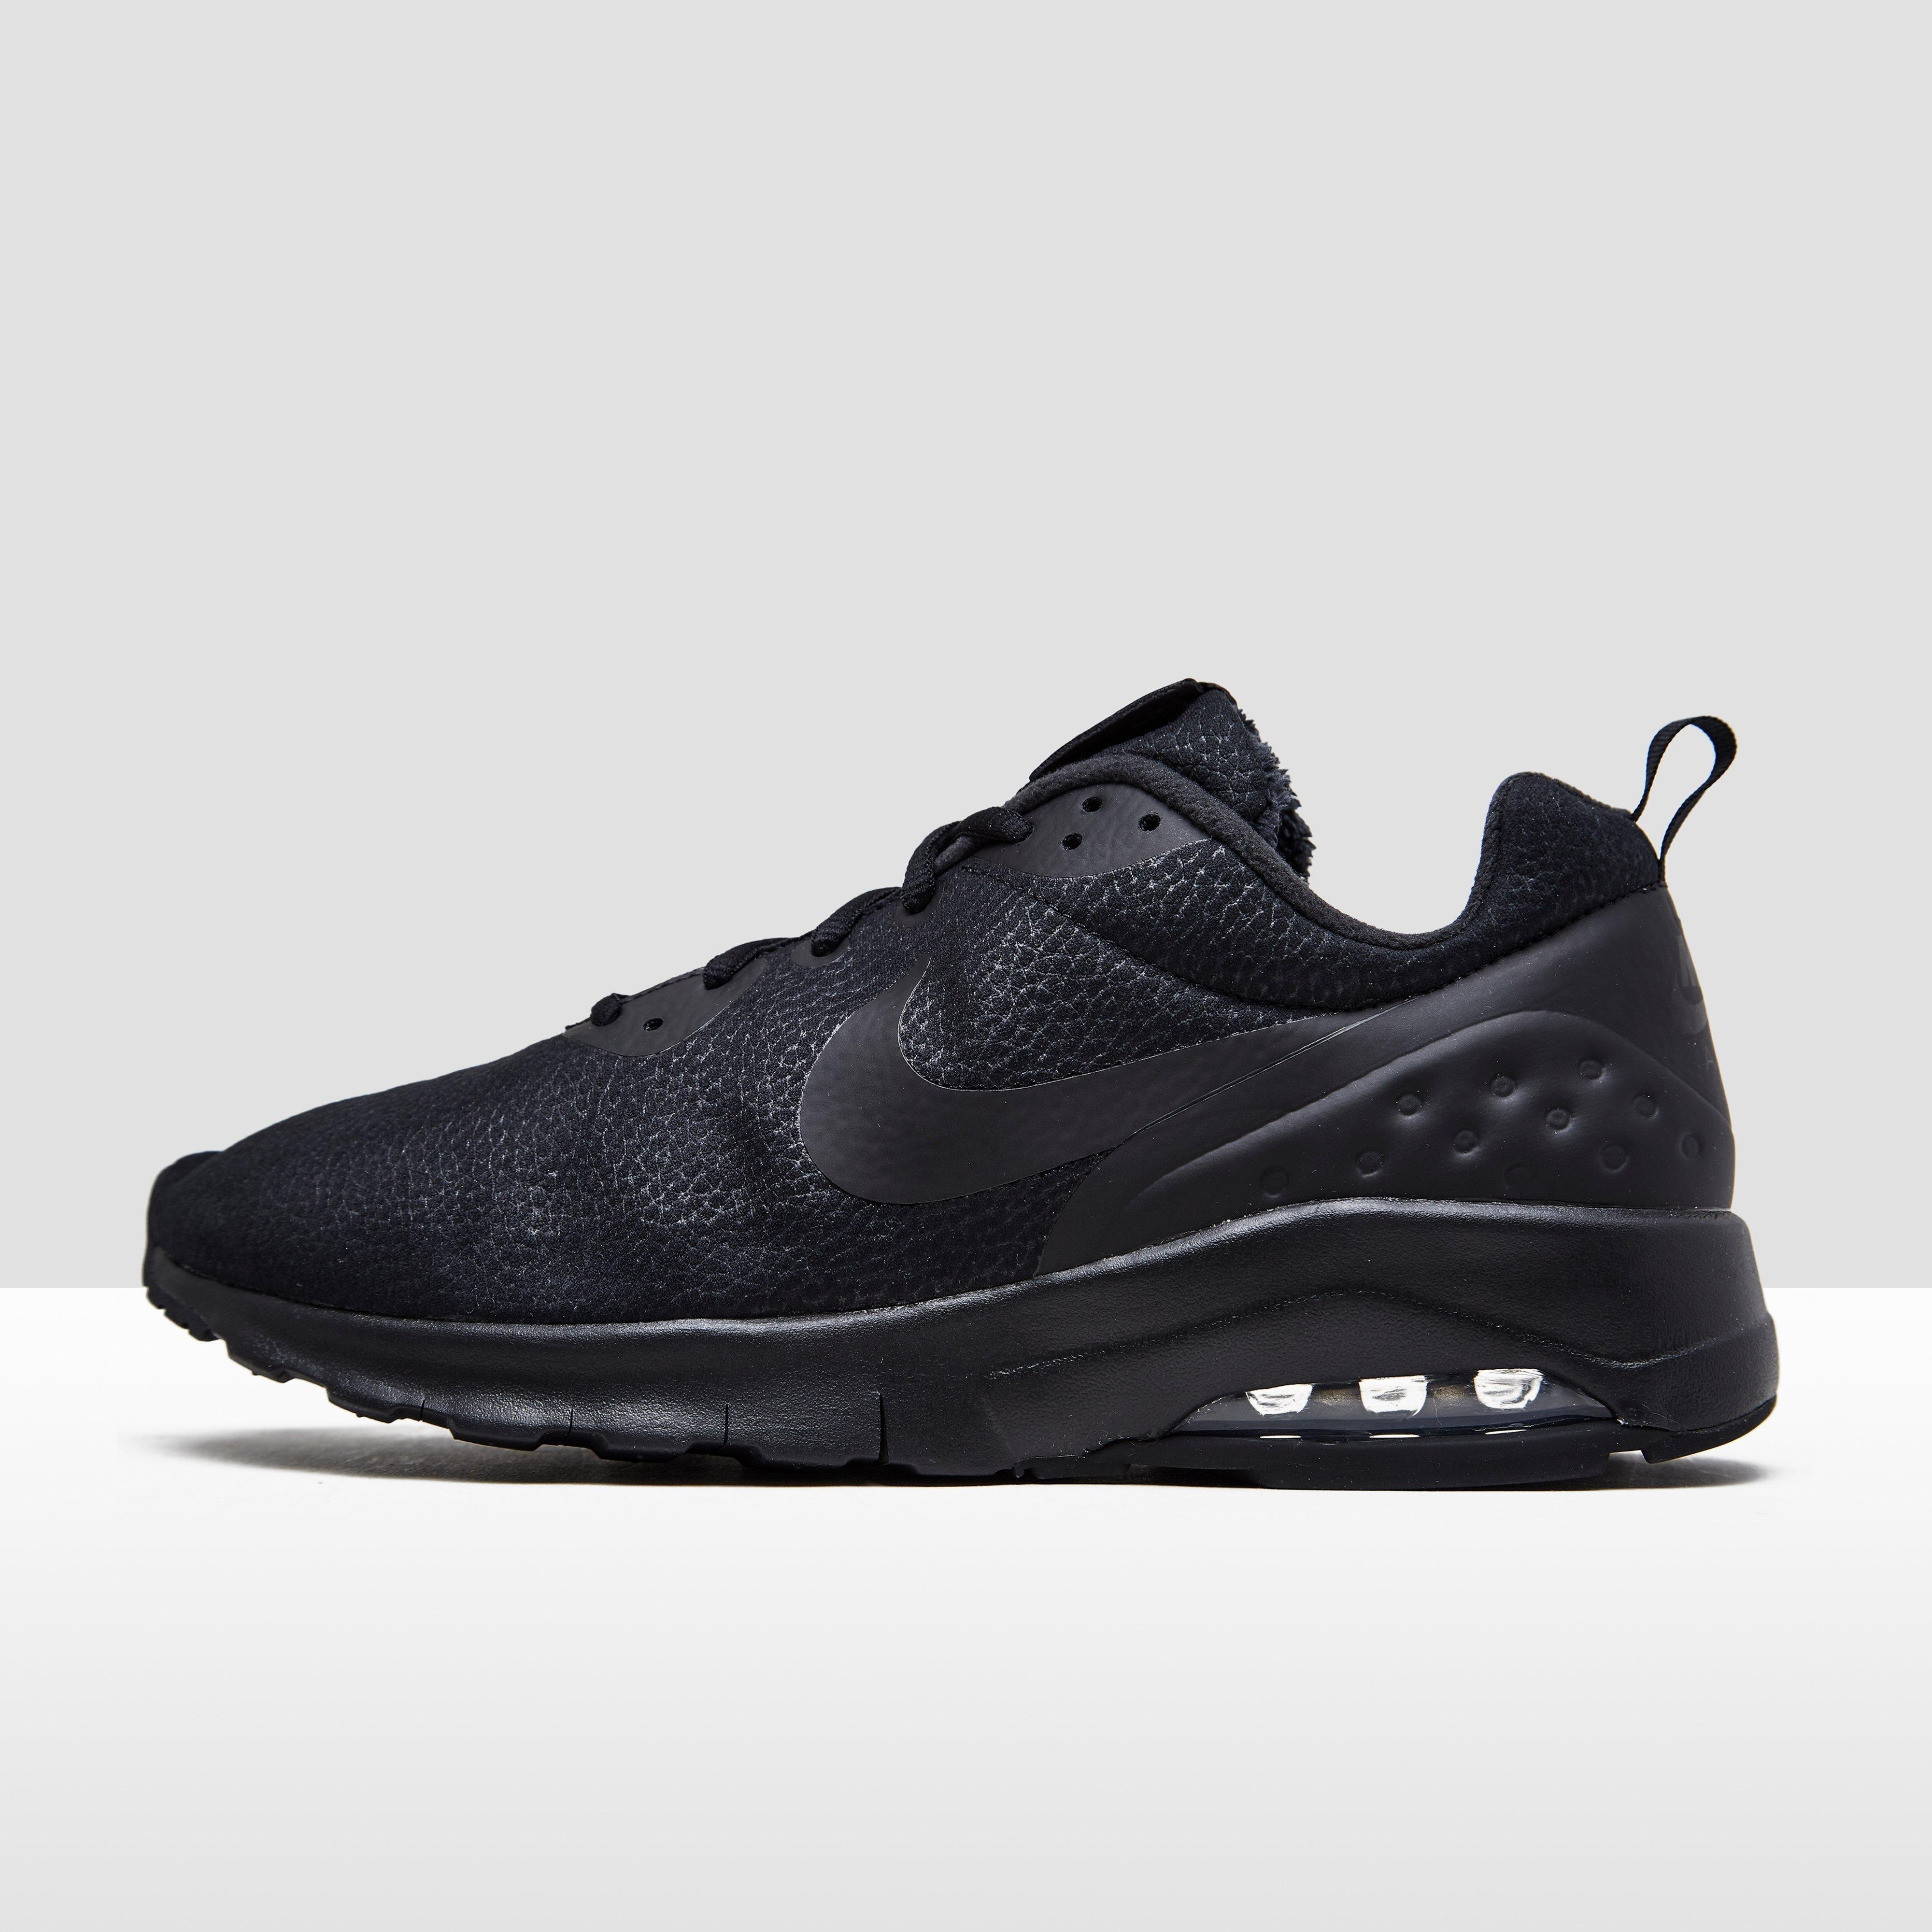 Nike Mouvement Air Max Baskets Basses Hommes Noirs I8bJfb